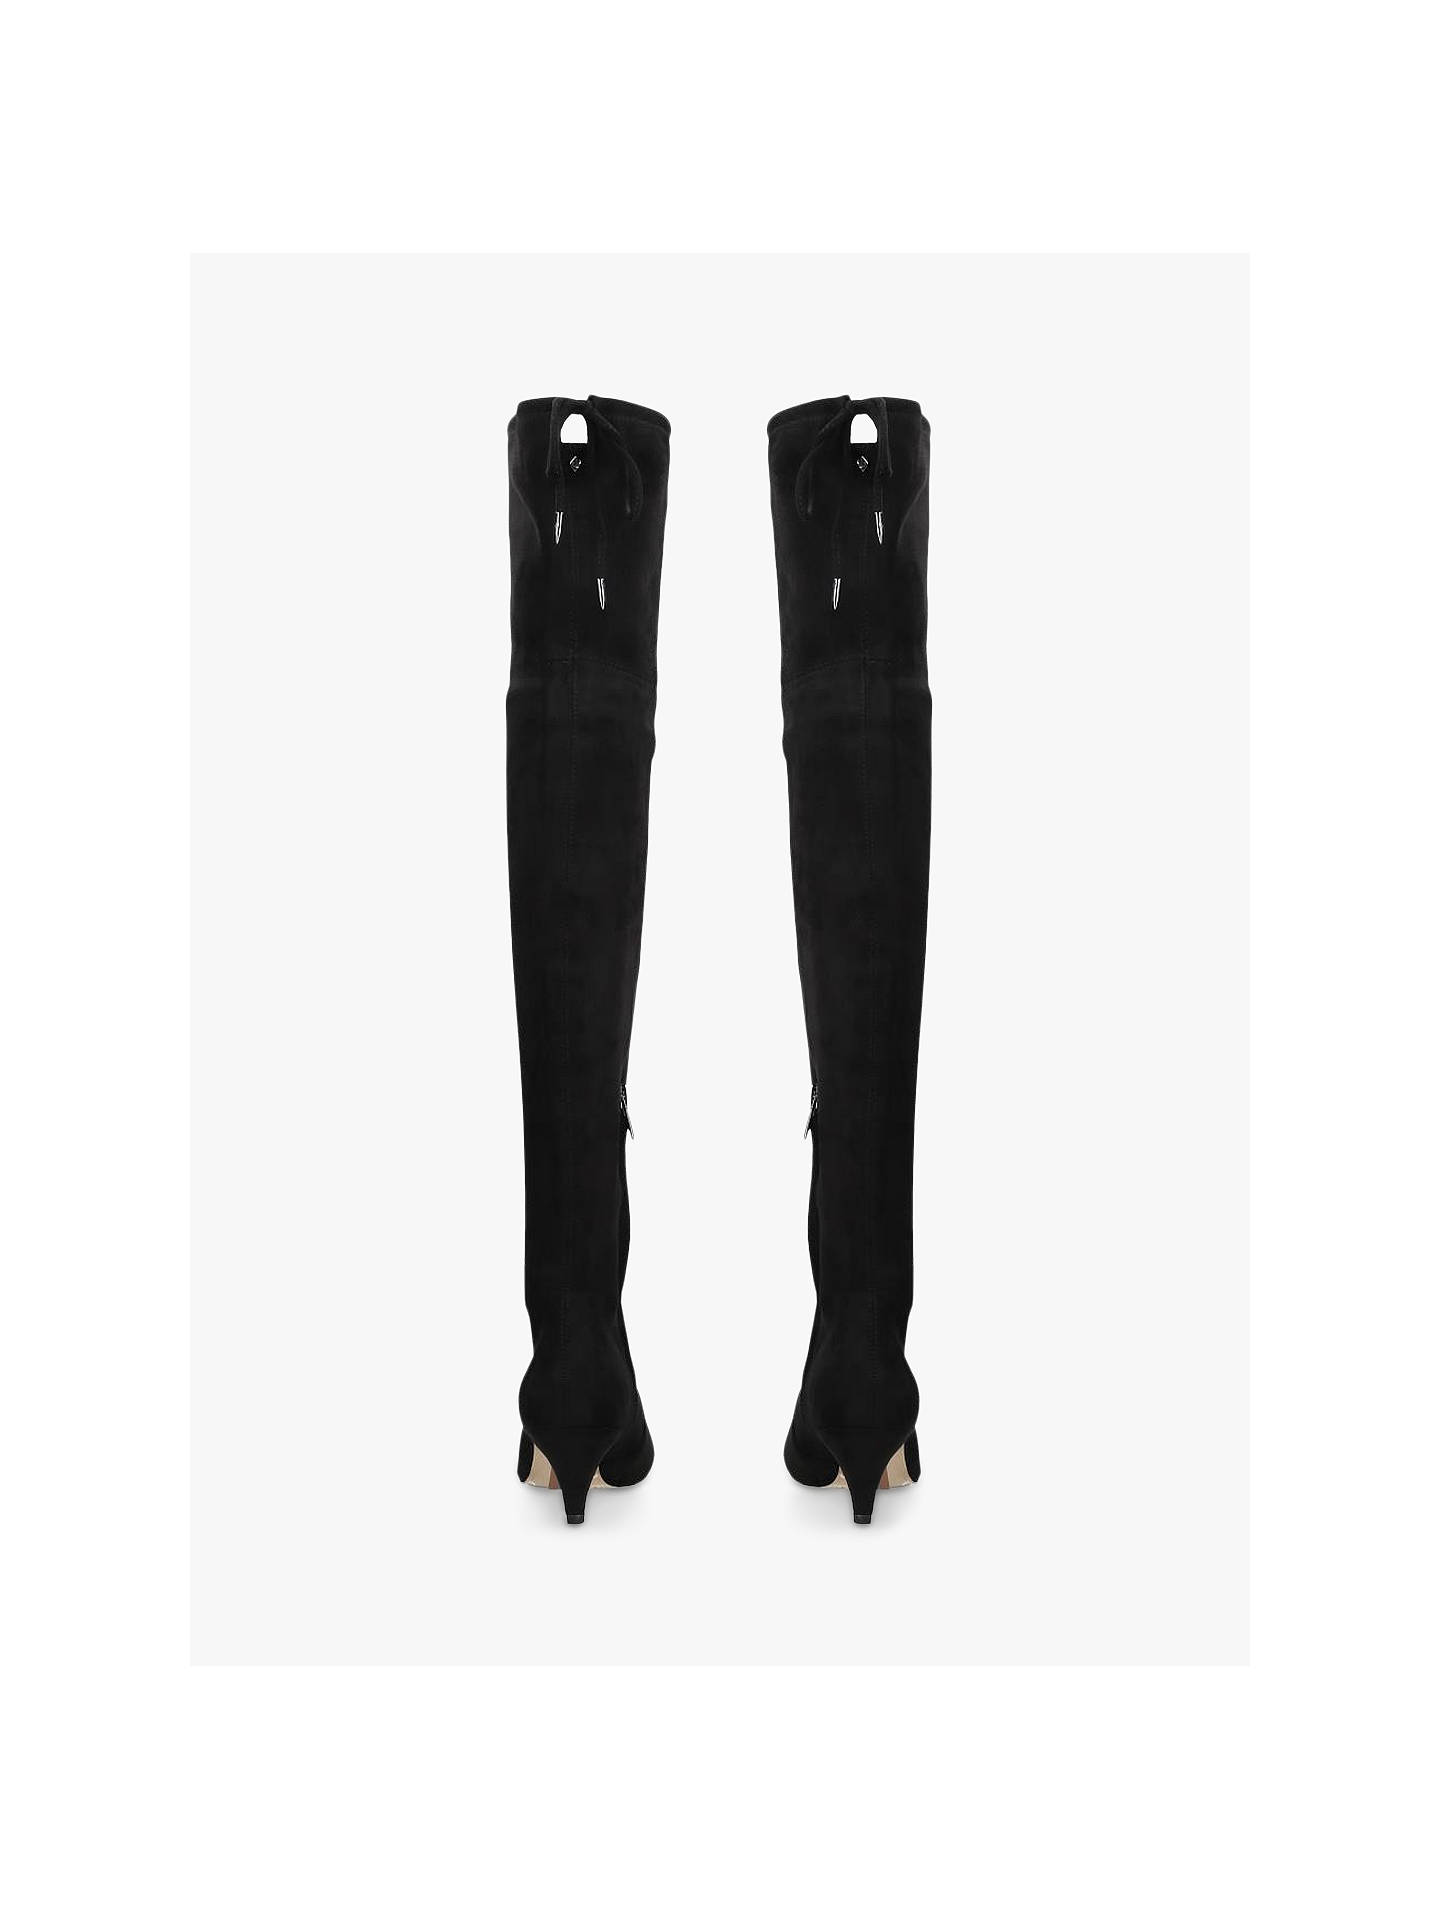 f677d9a0031 ... Buy Sam Edelman Kristie Knee High Boots